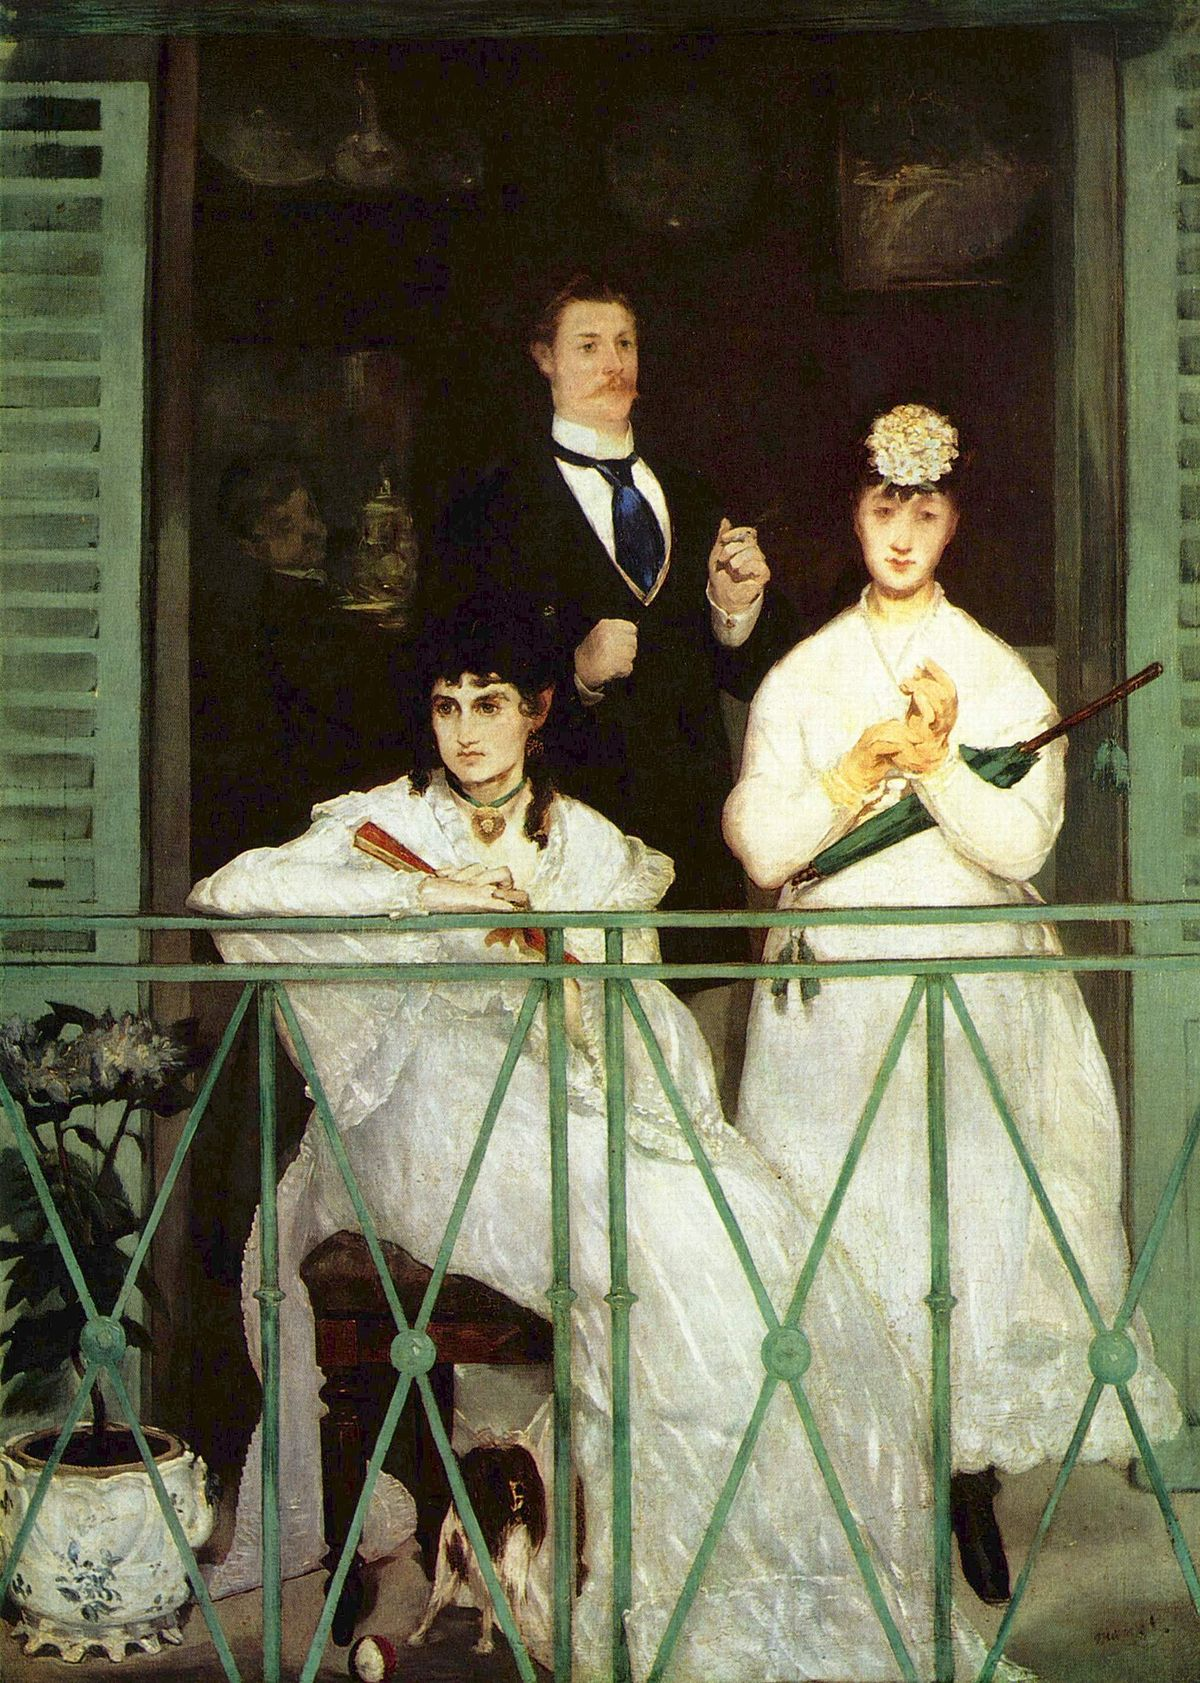 edouard manet luncheon on the grass essay Édouard manet: edouard manet, 19th-century french artist who painted daring   his le déjeuner sur l'herbe (luncheon on the grass), exhibited in 1863 at the.